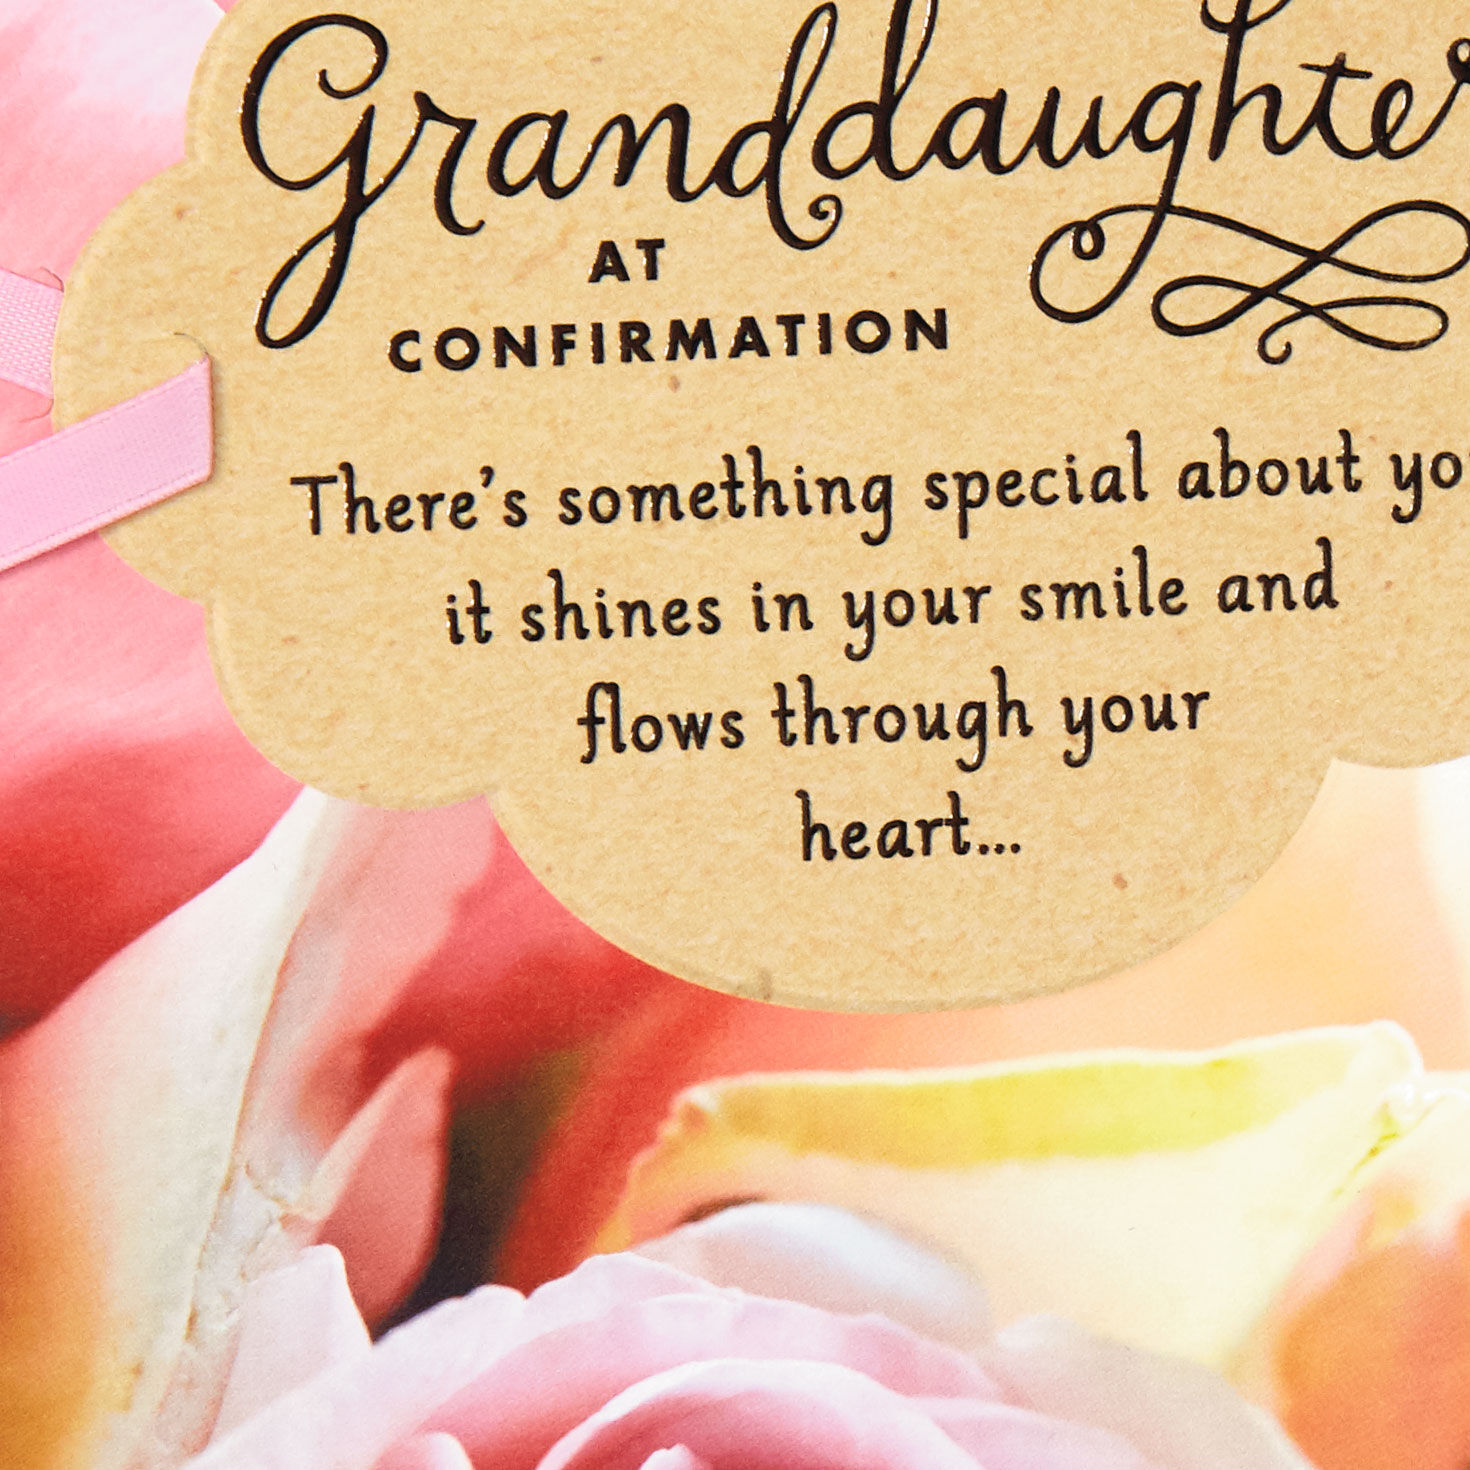 Confirmation Card Granddaughter Confirmation Blessings